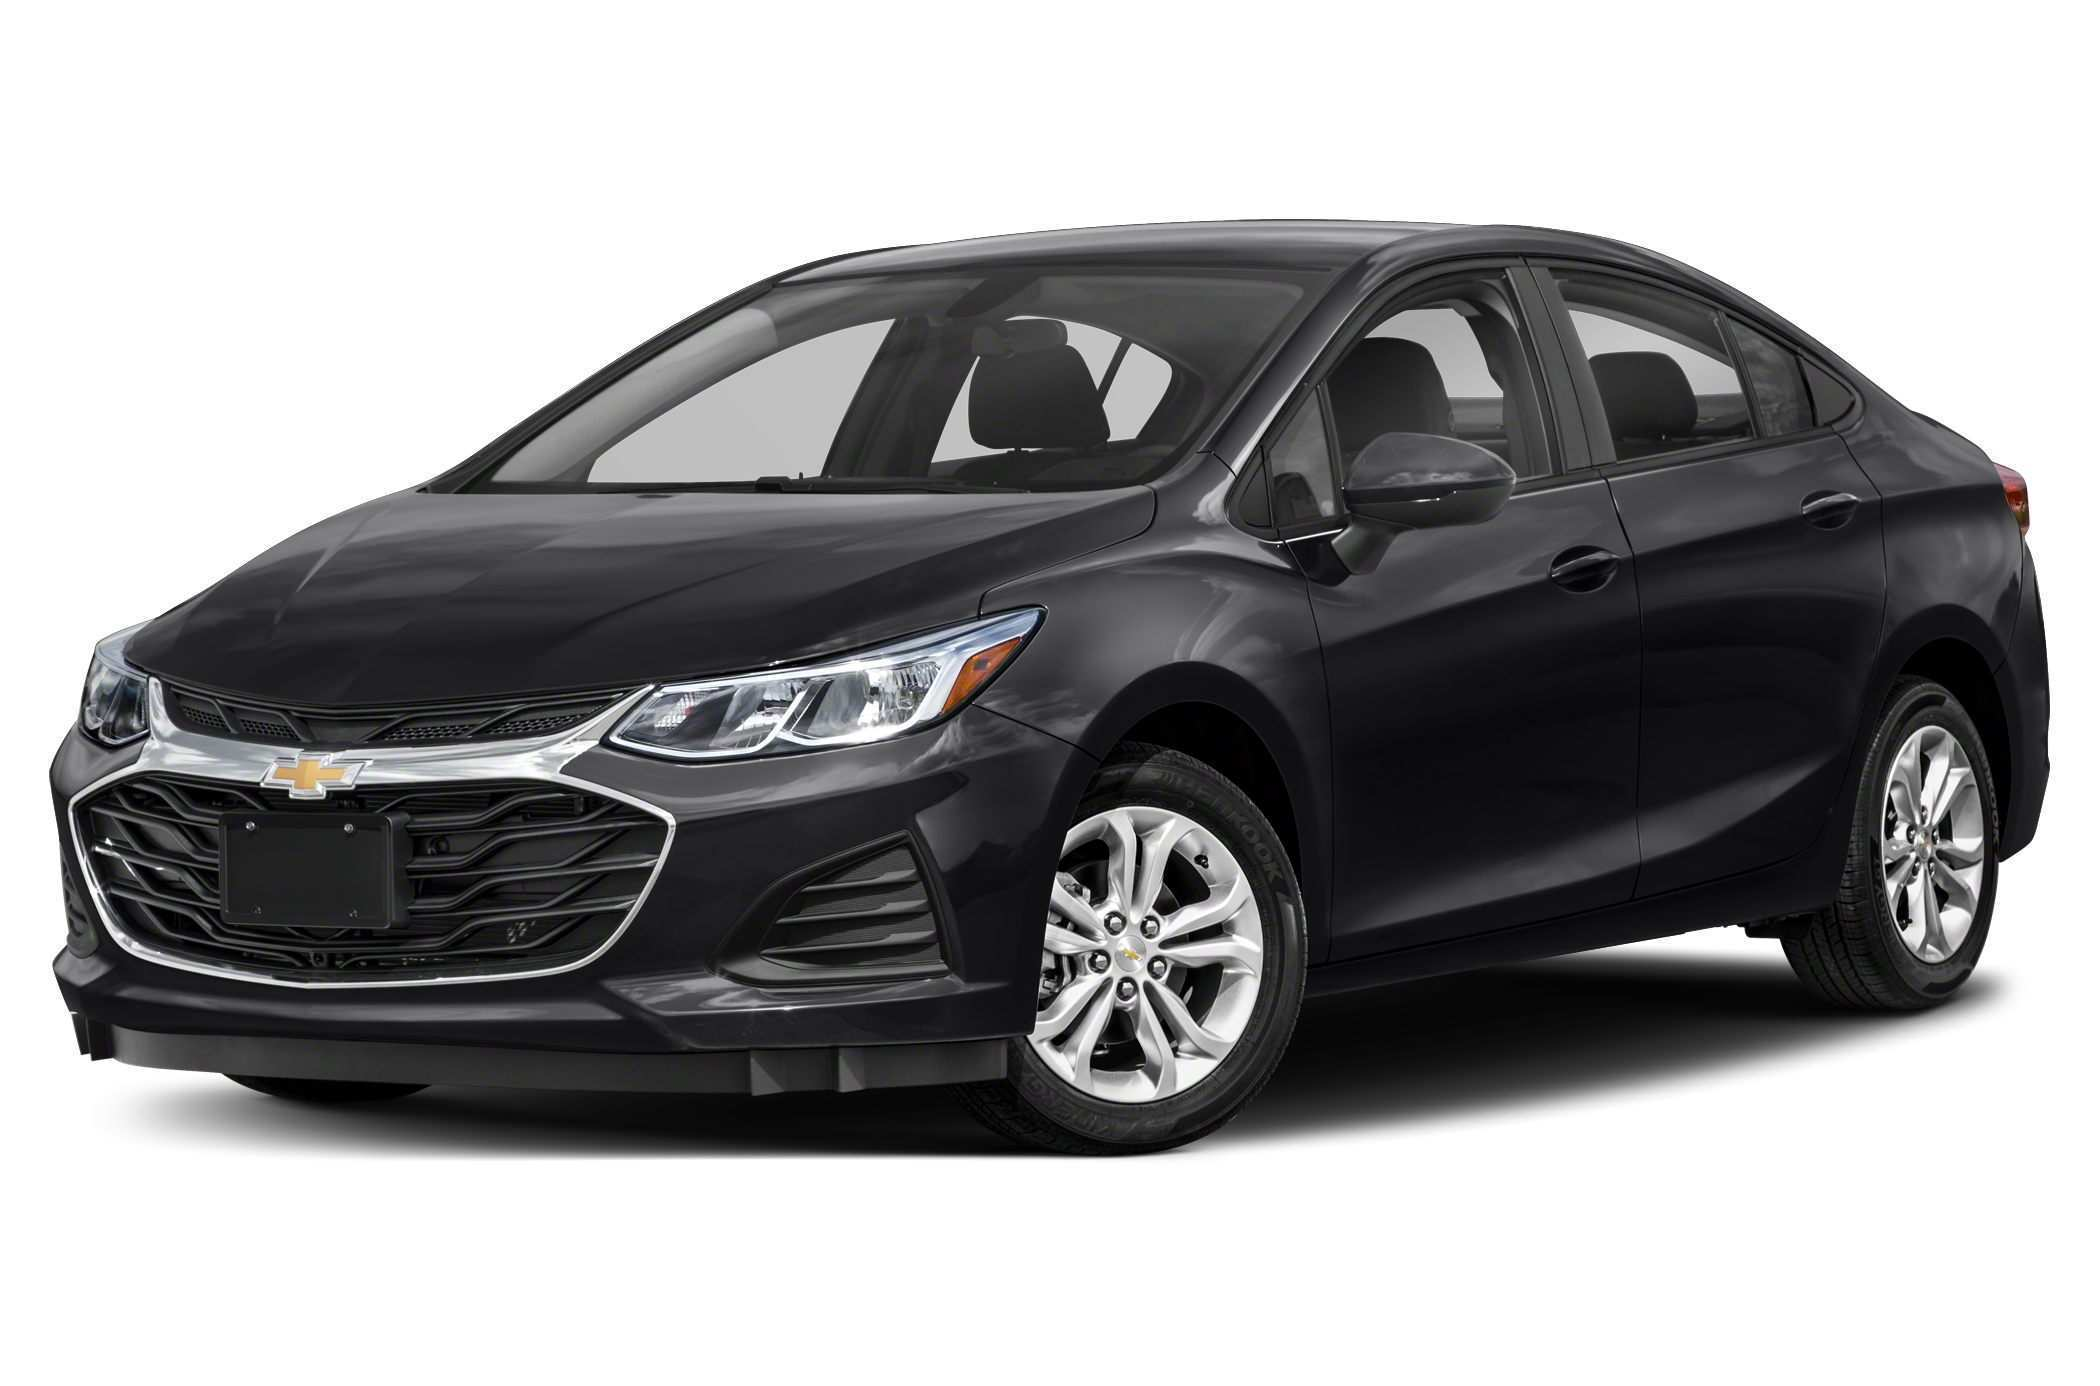 84 The 2019 Chevy Cruze Redesign And Concept